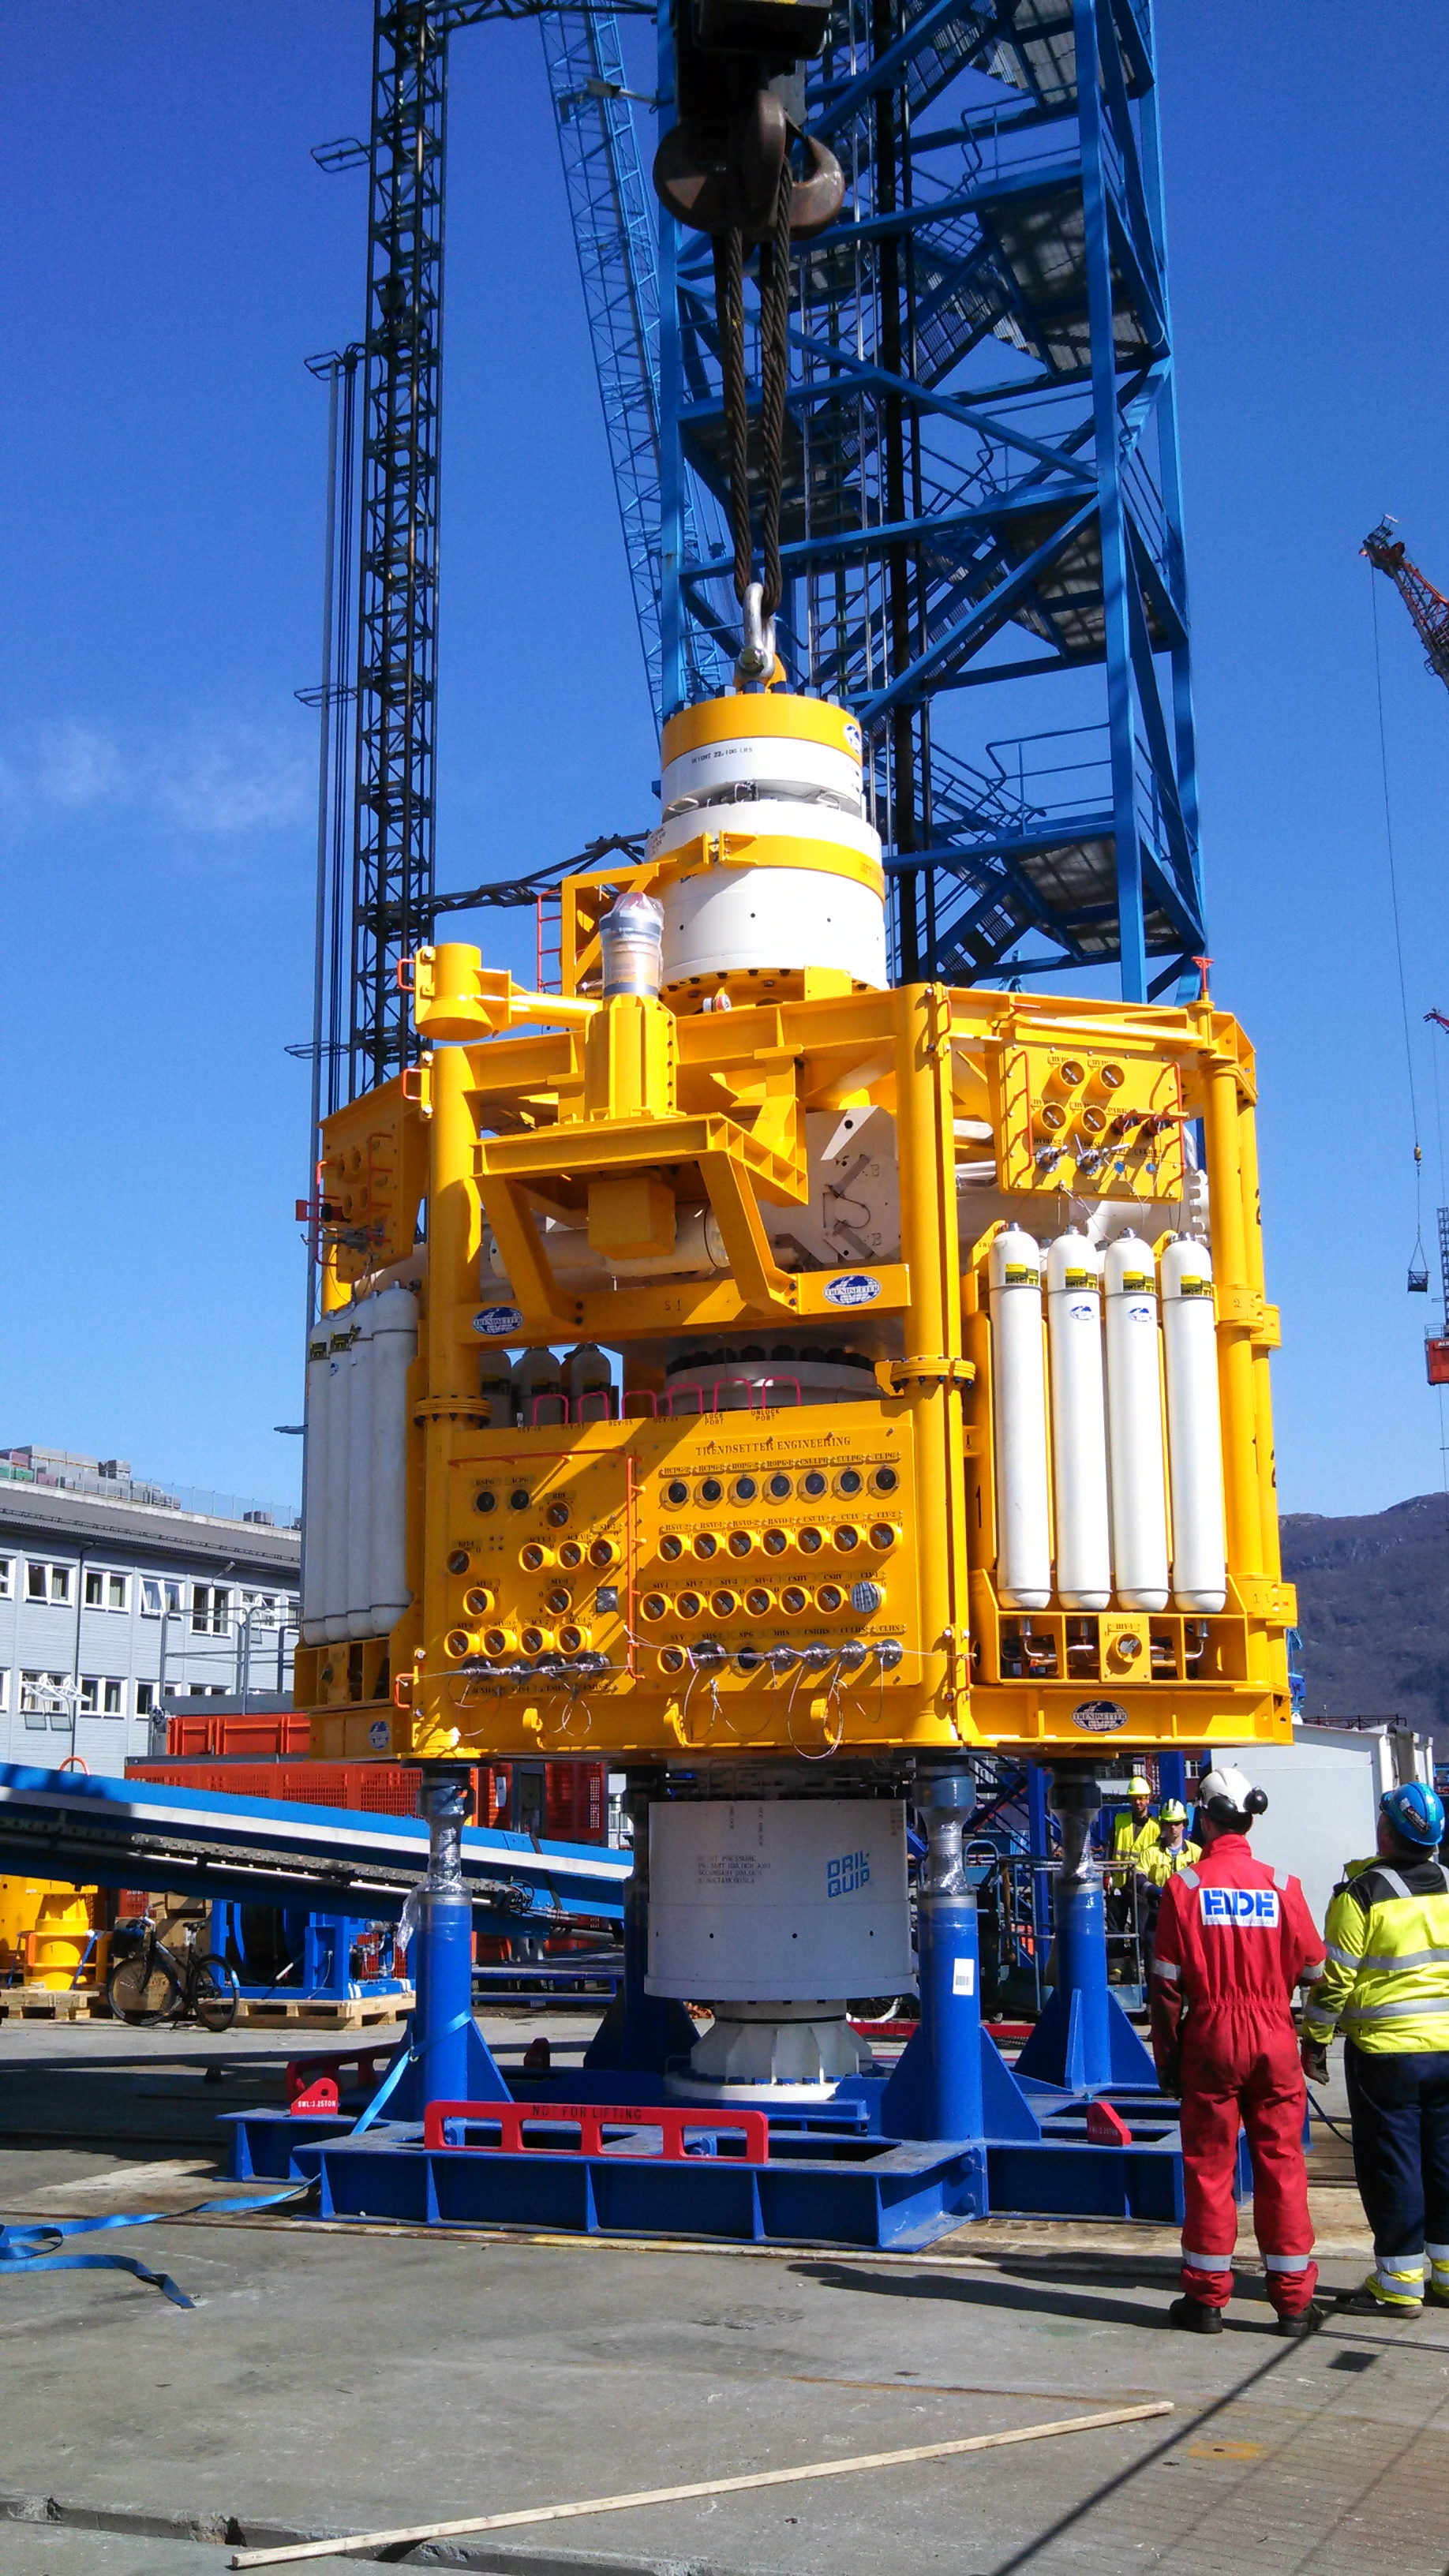 An advanced offshore blowout preventer (BOP).